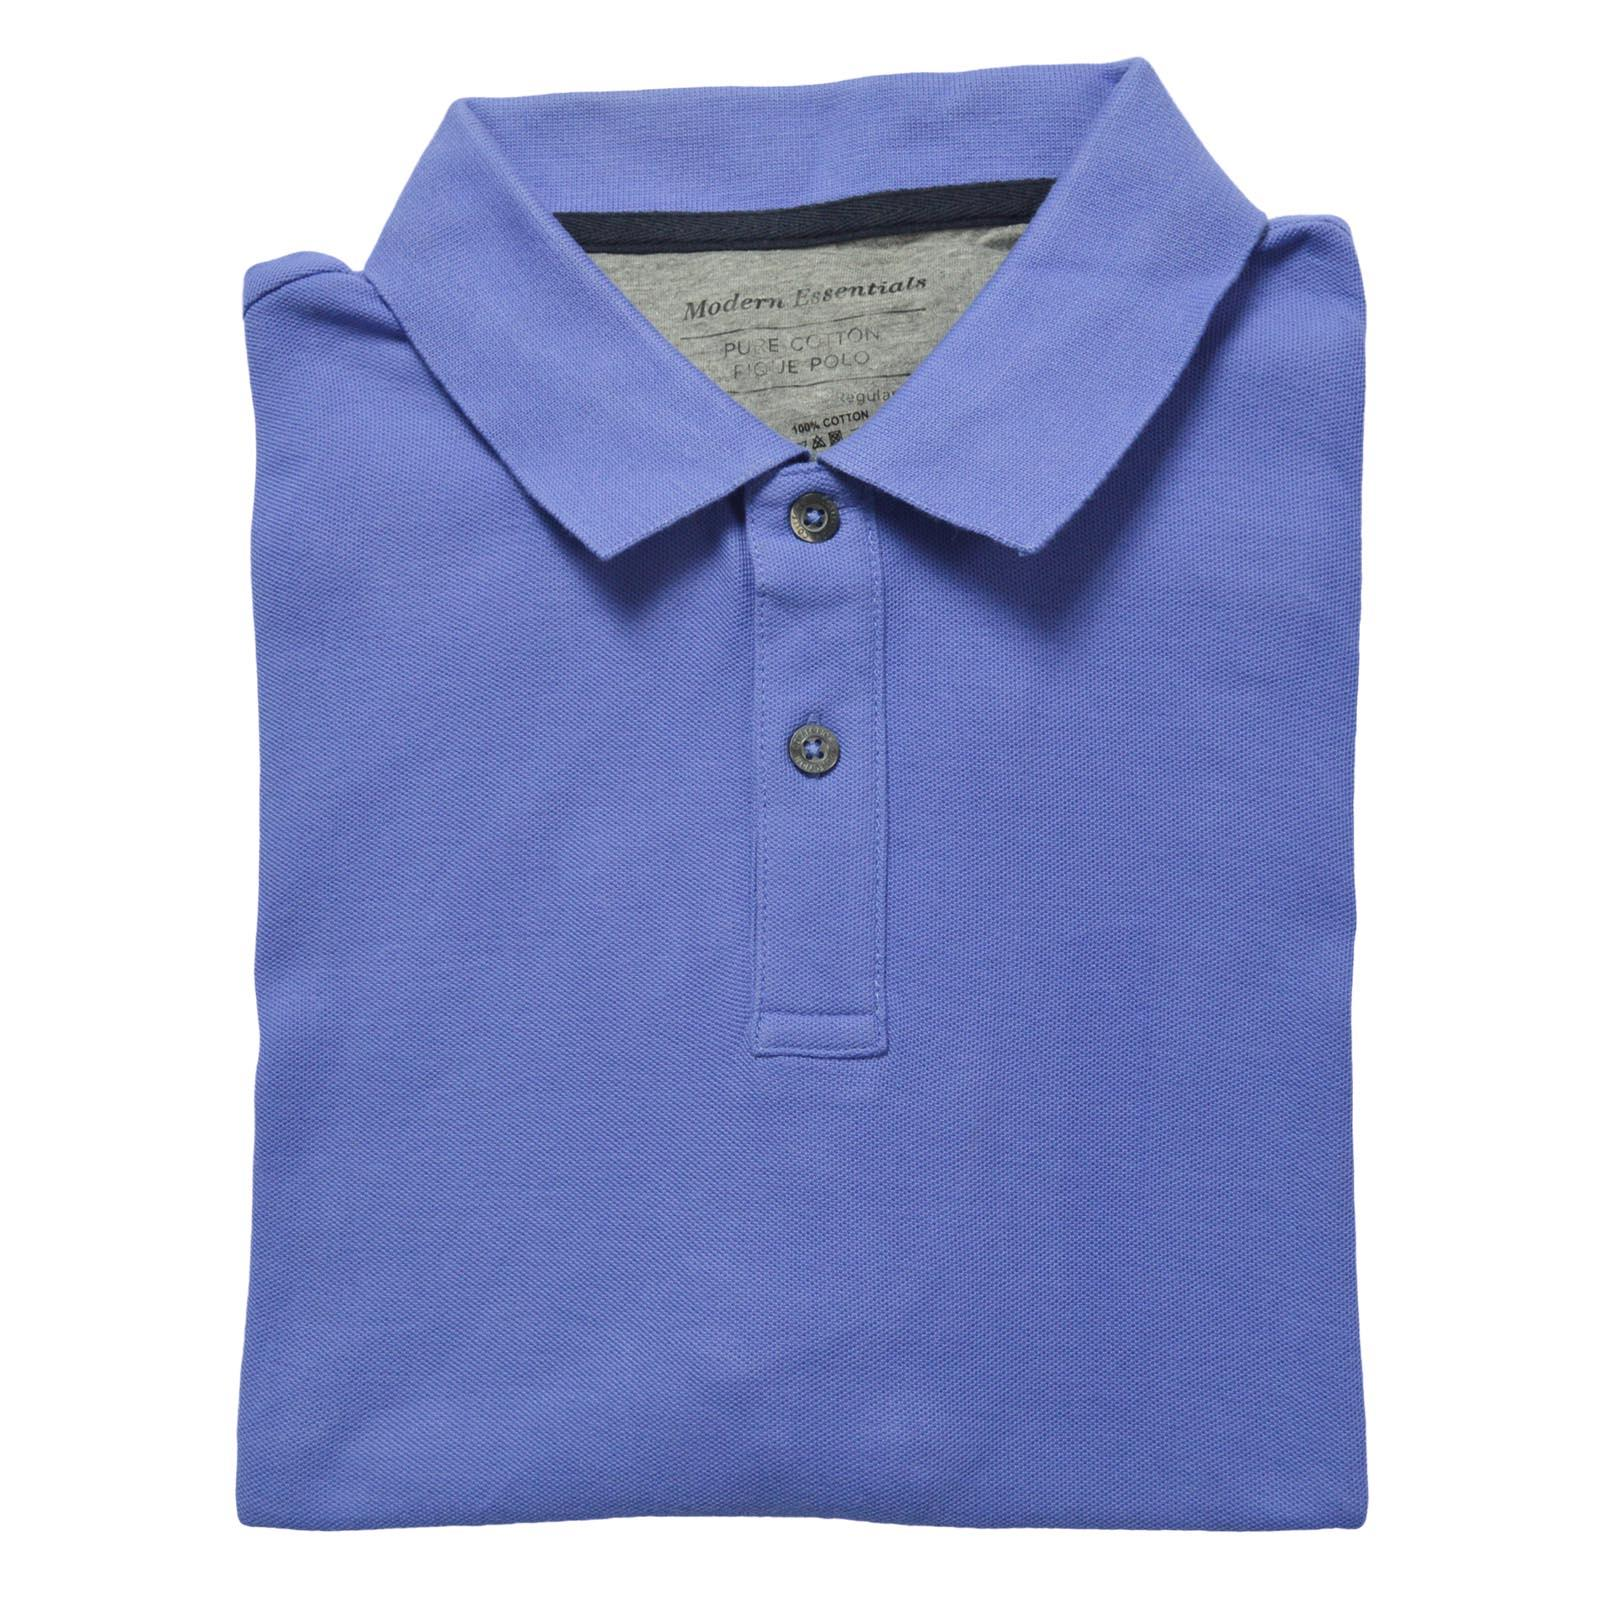 MARKS-amp-SPENCER-Mens-Classic-Cotton-Polo-Shirt-M-amp-S-All-Colours-and-Large-Sizes thumbnail 10